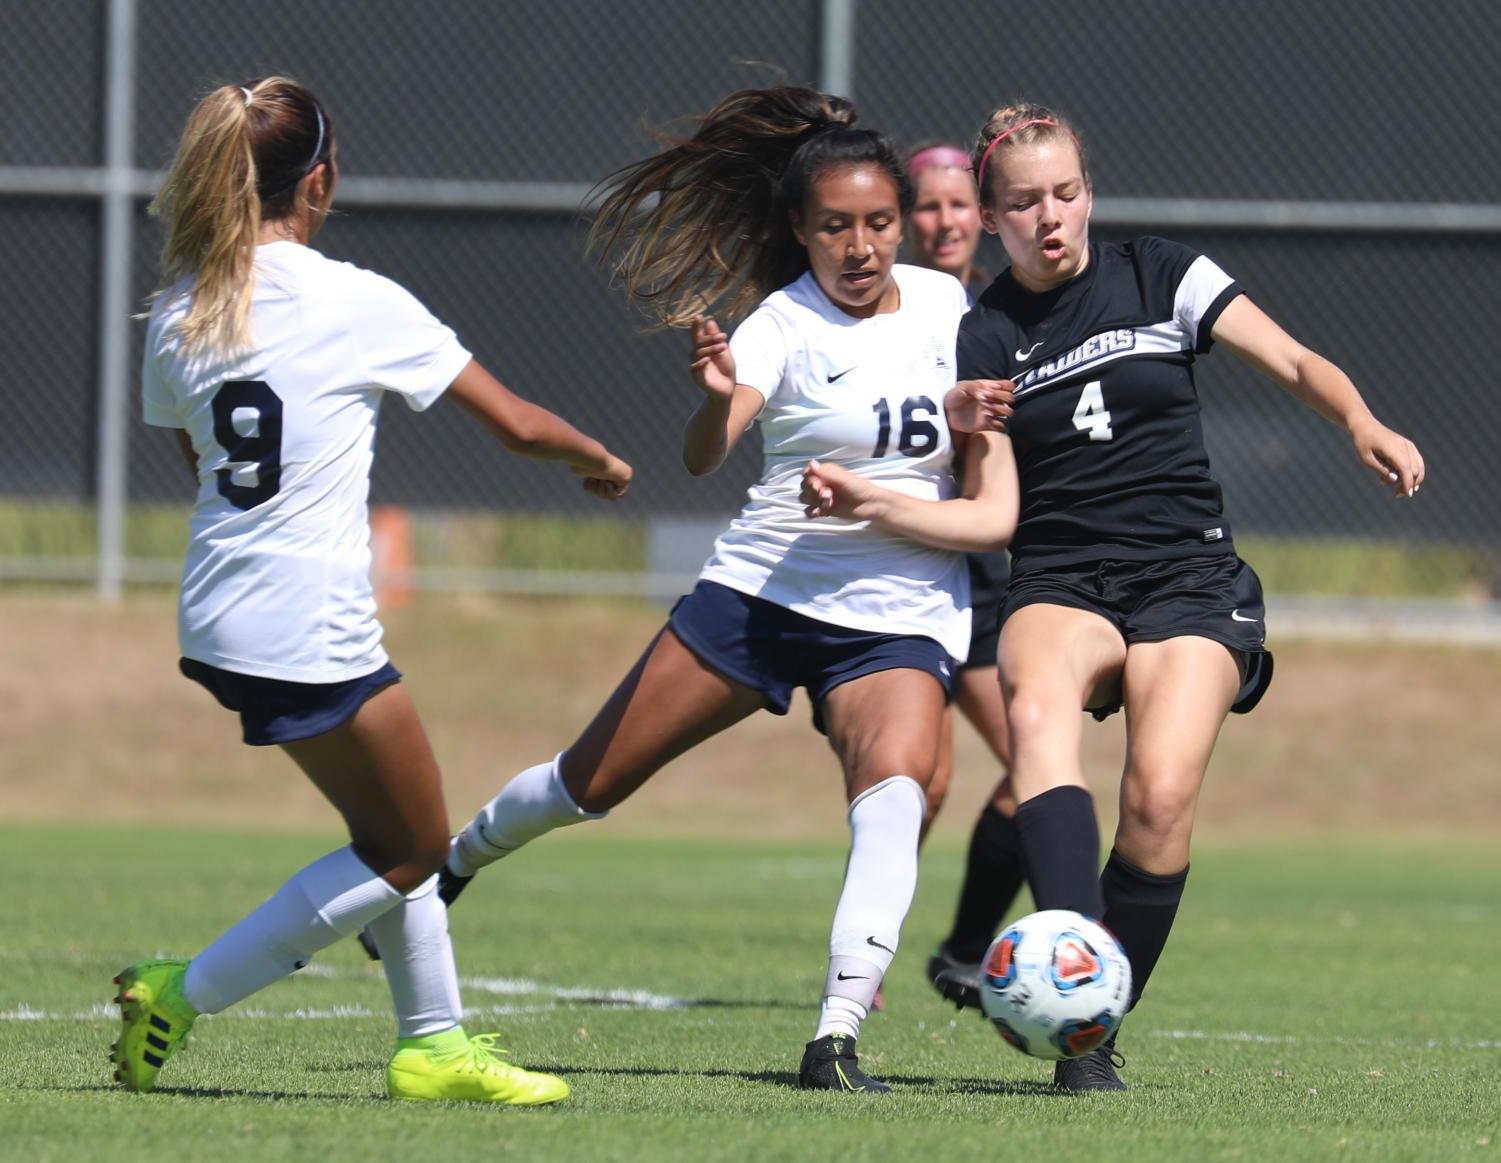 Monica Bernardino competes with Moorpark player, sophomore Megan Chandler during the home game against El Camino College on Friday, Sept. 13. Photo credit: Ryan Bough